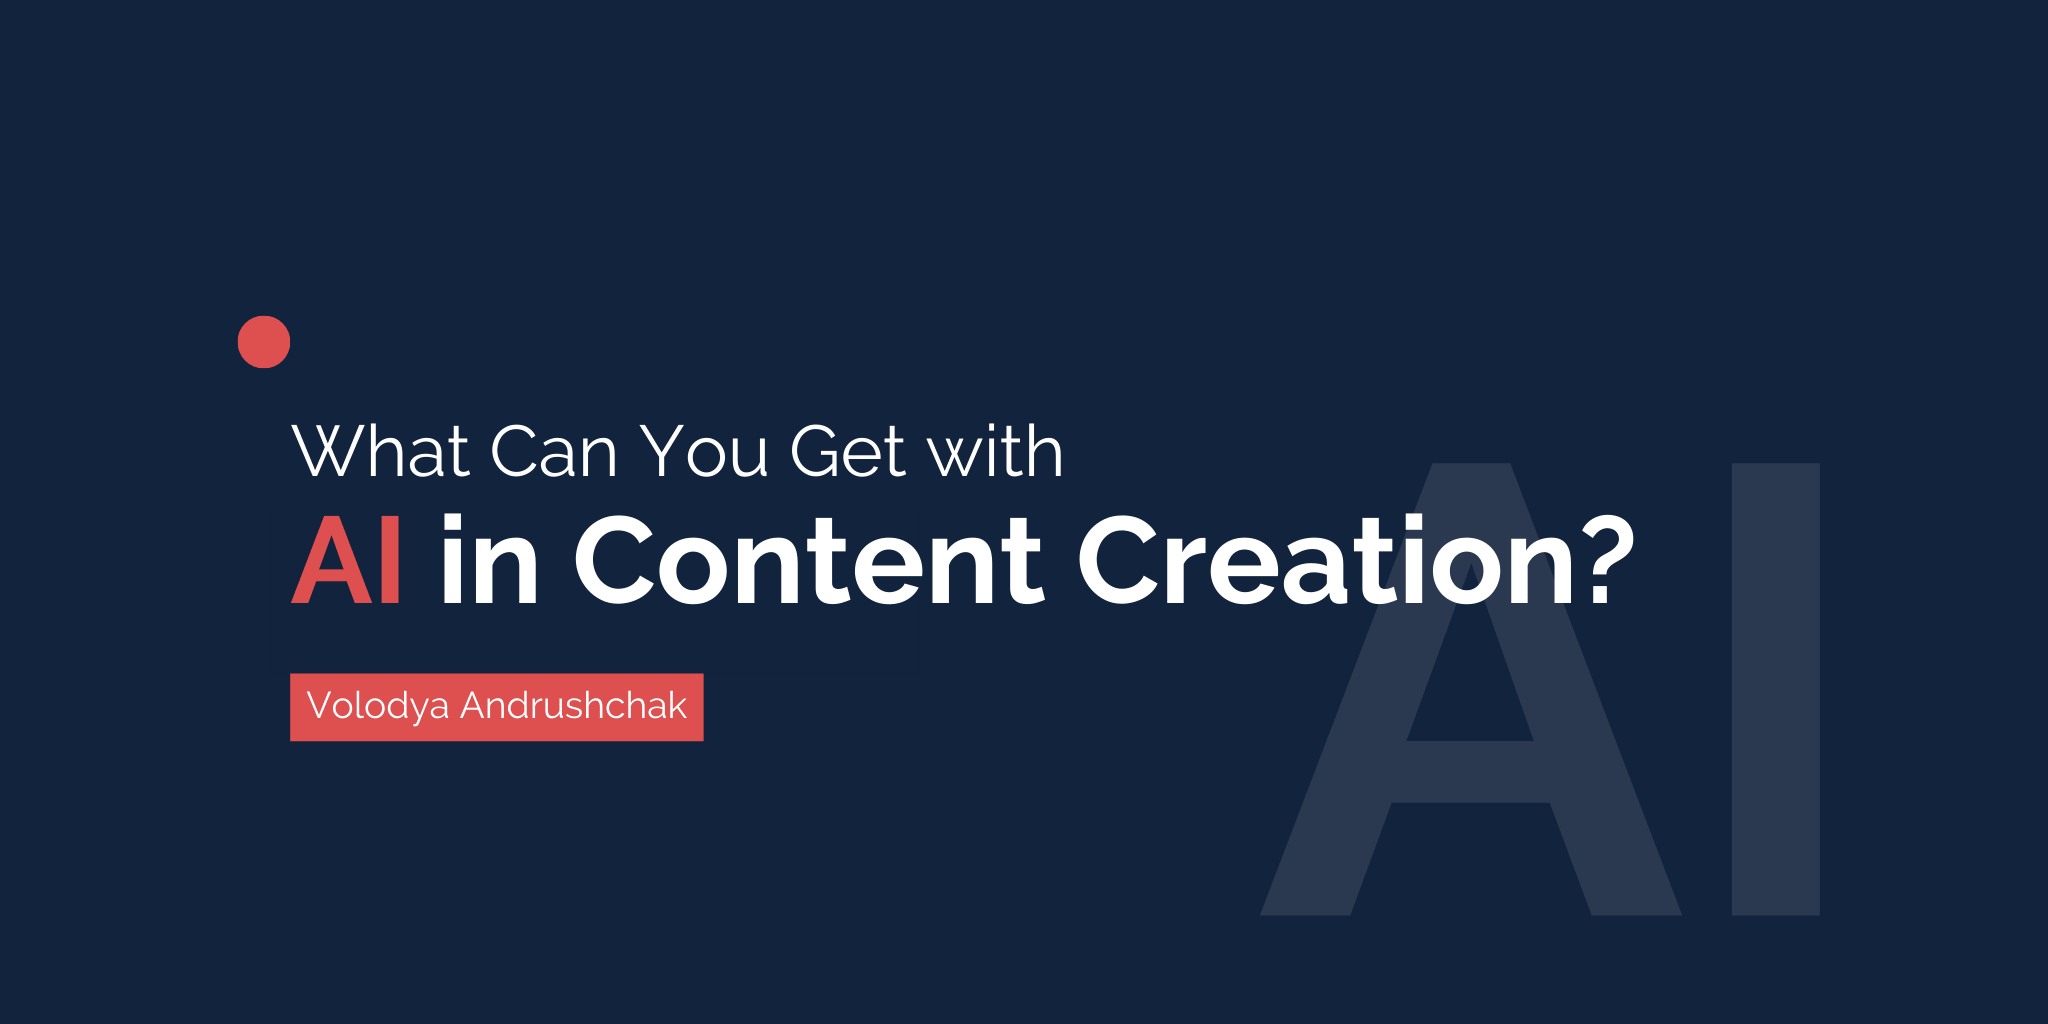 What Can You Get with AI in Content Creation?